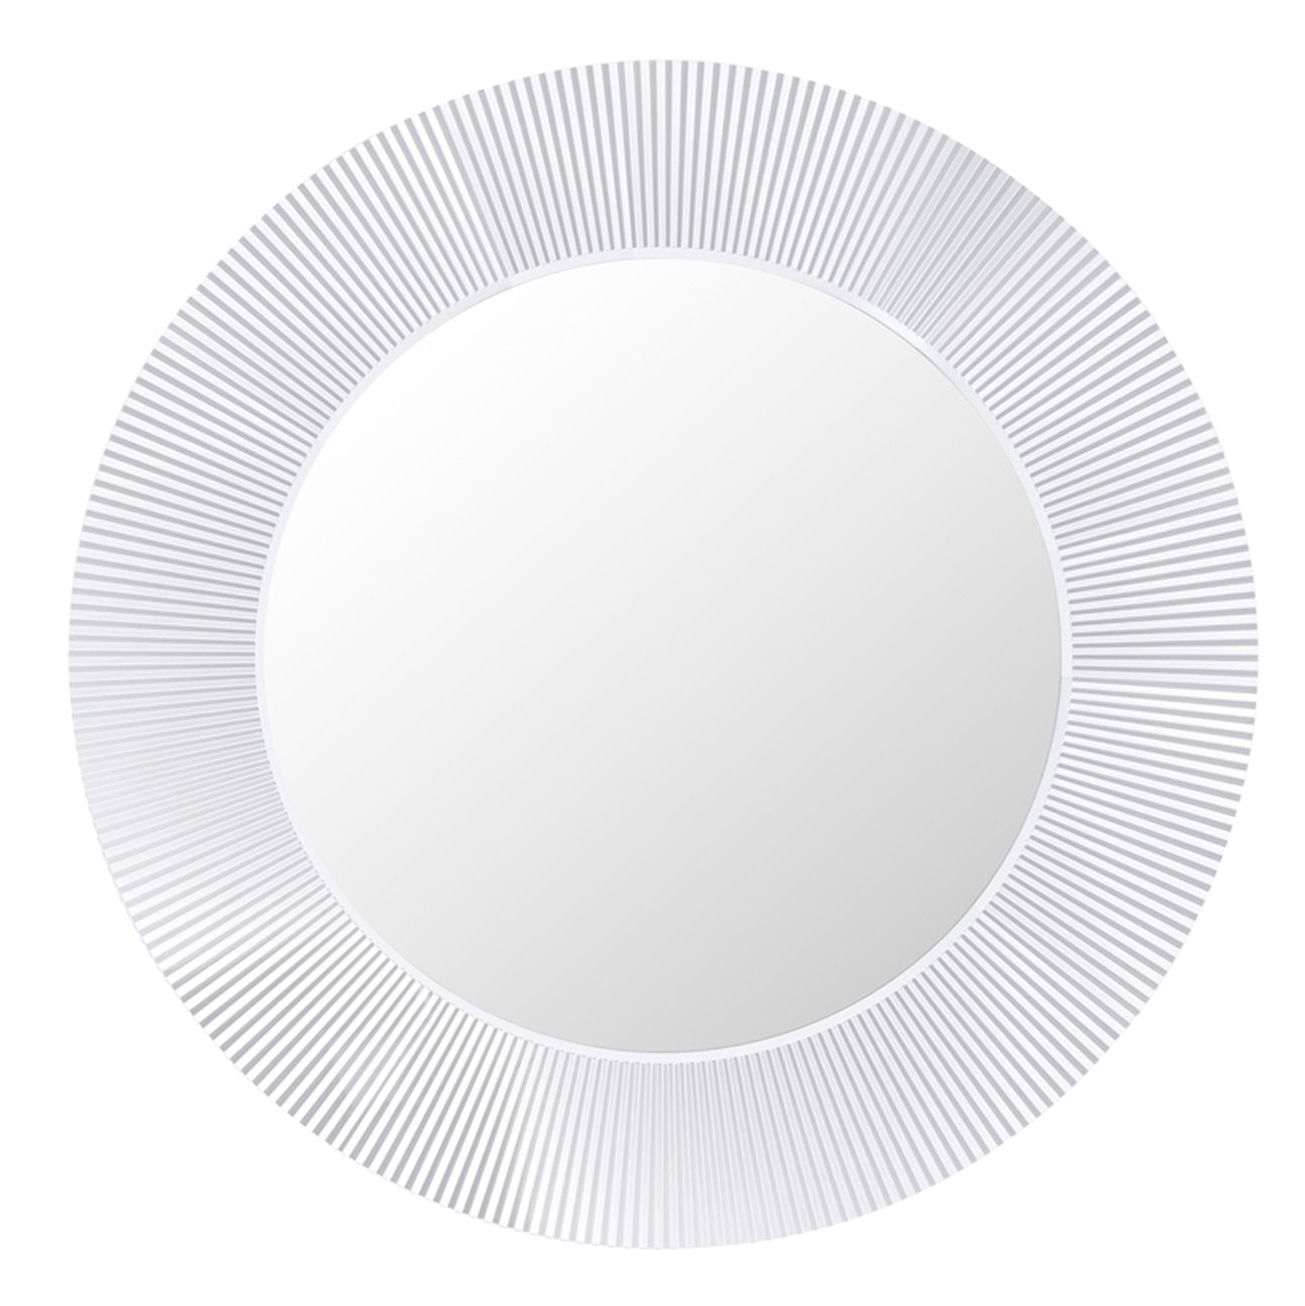 All saints illuminated mirror luminous led cristal by for Miroir kartell